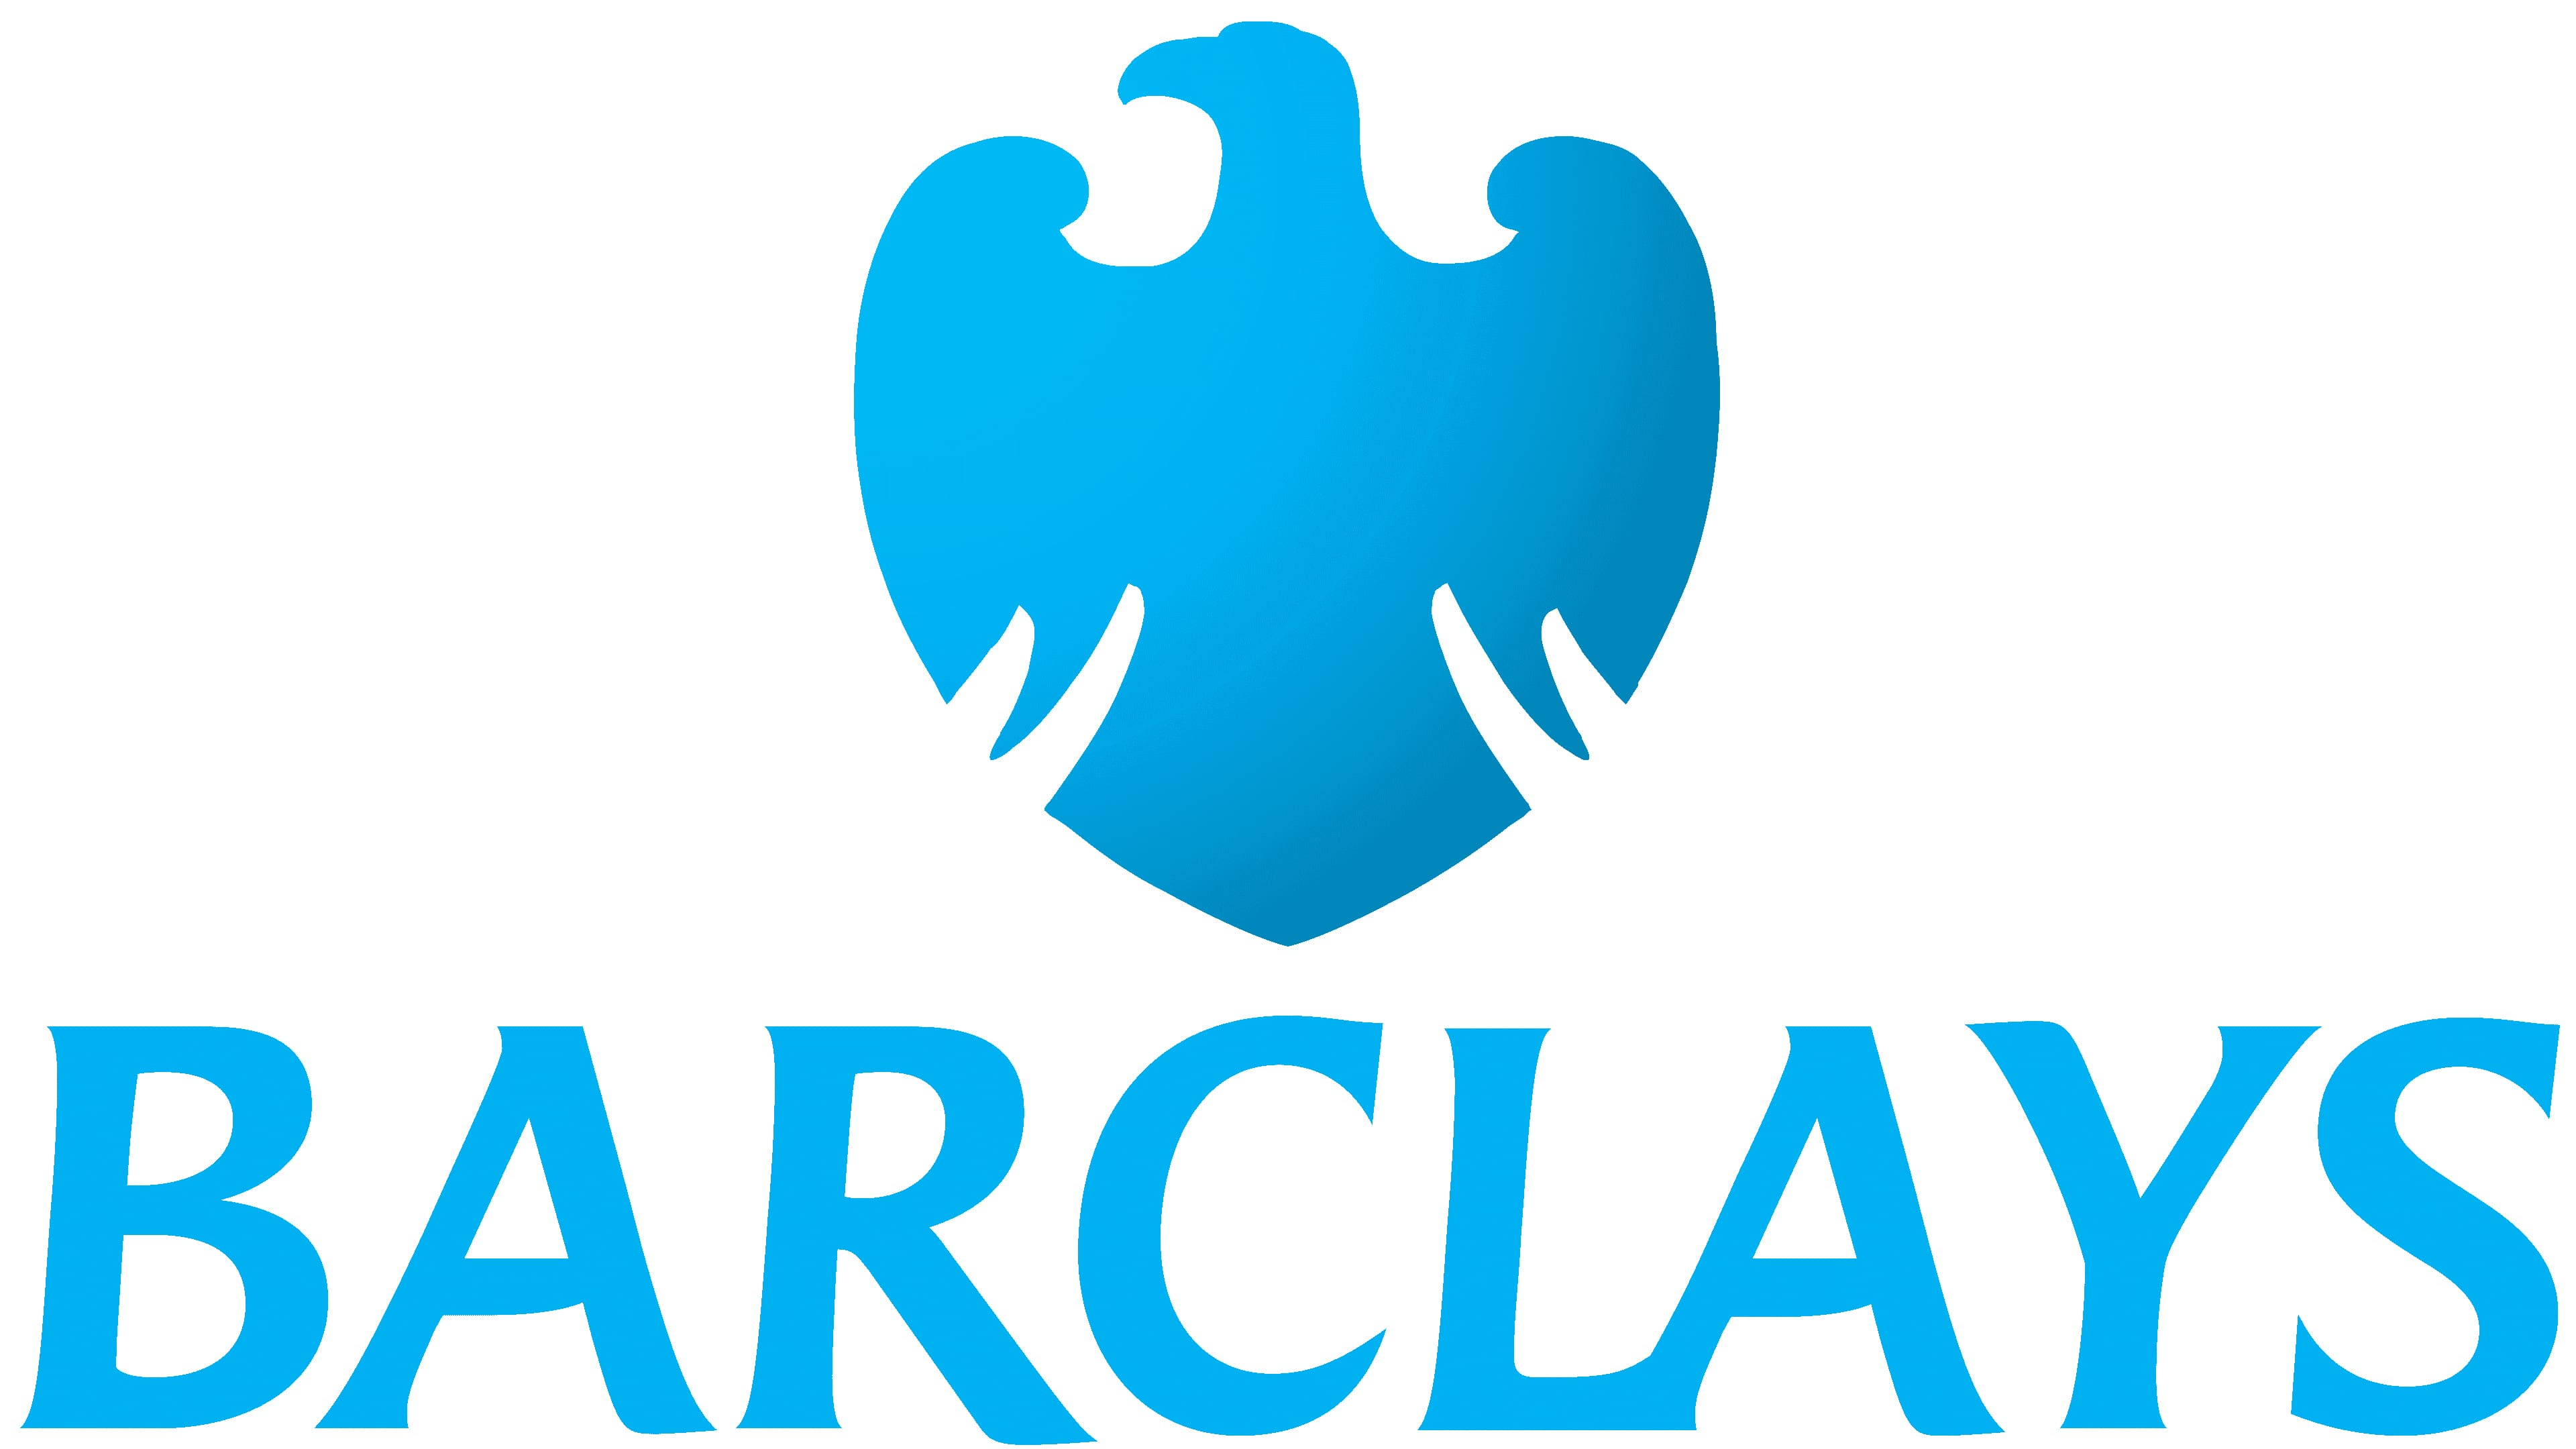 barclays logo  barclays symbol meaning  history and evolution american eagle logo pictures american eagle logo pictures